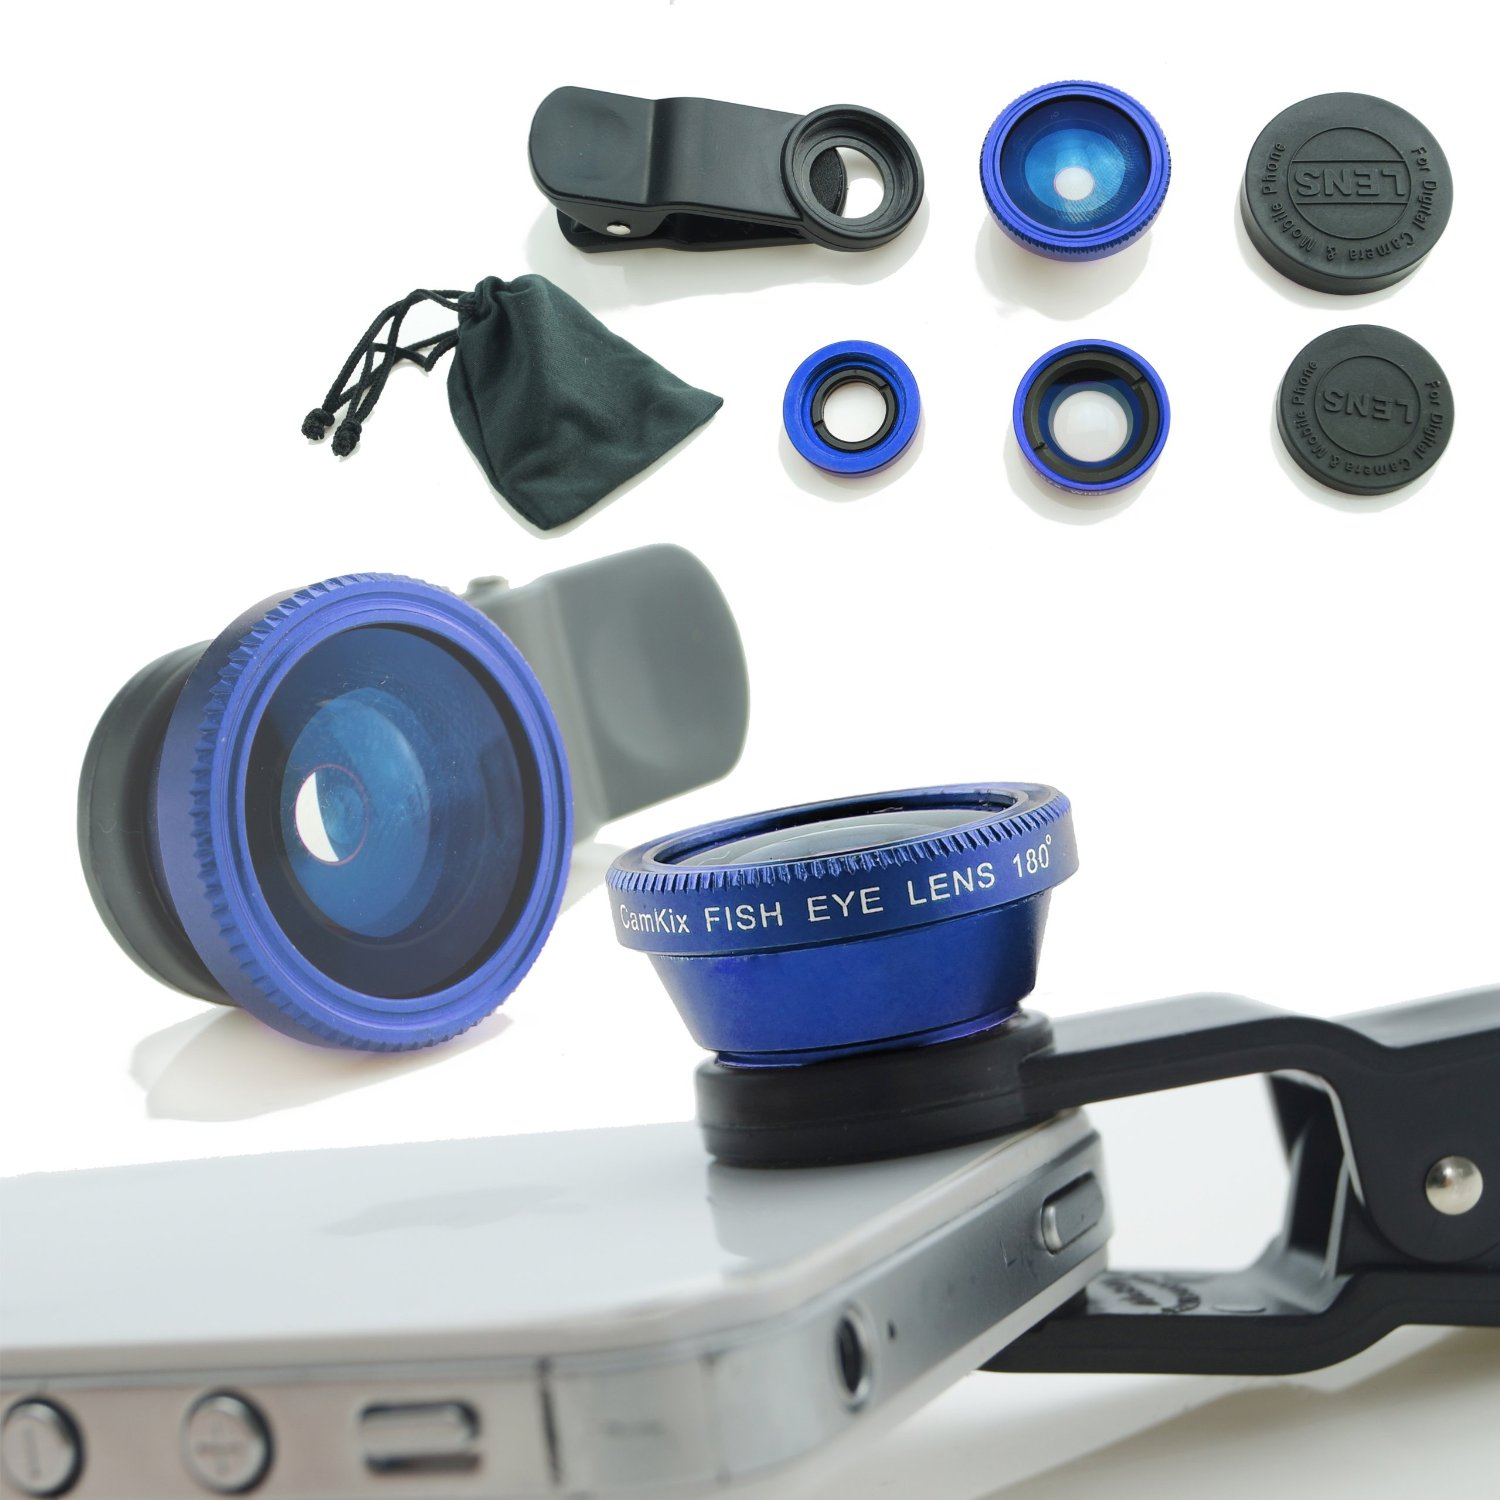 Universal 3 in1 Camera Lens Kit for Smart phones includes One Fish Eye Lens / One 2 in 1 Macro Lens and Wide Angle Lens / One Universal Clip / One Microfiber Carrying Bag / with Camkix� Retail Packaging - Compatible with iPhone, Samsung Galaxy, HTC, Motorola, Tablets, iPad, and Laptops (Blue)